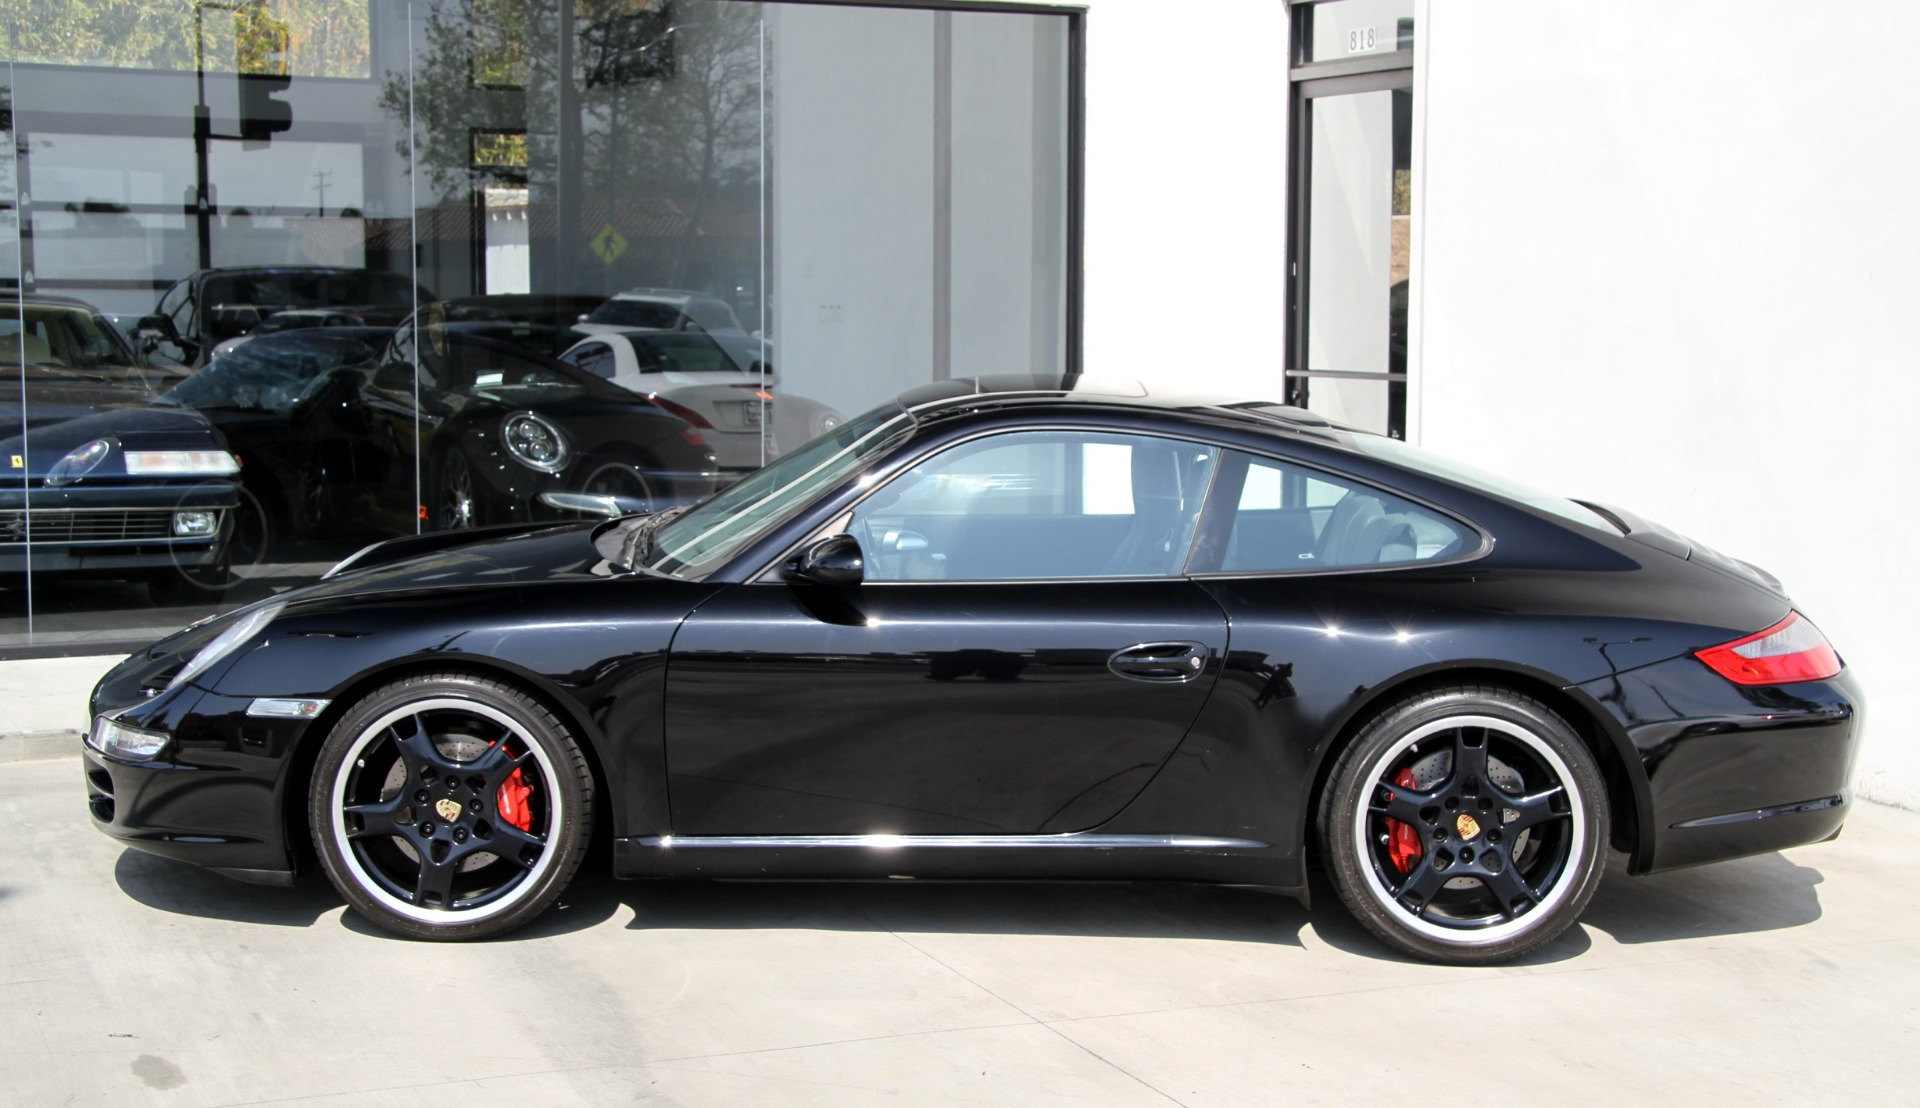 Free Vehicle History Report By Vin >> 2006 Porsche 911 Carrera S *** 6 SPEED MANUAL *** Stock ...